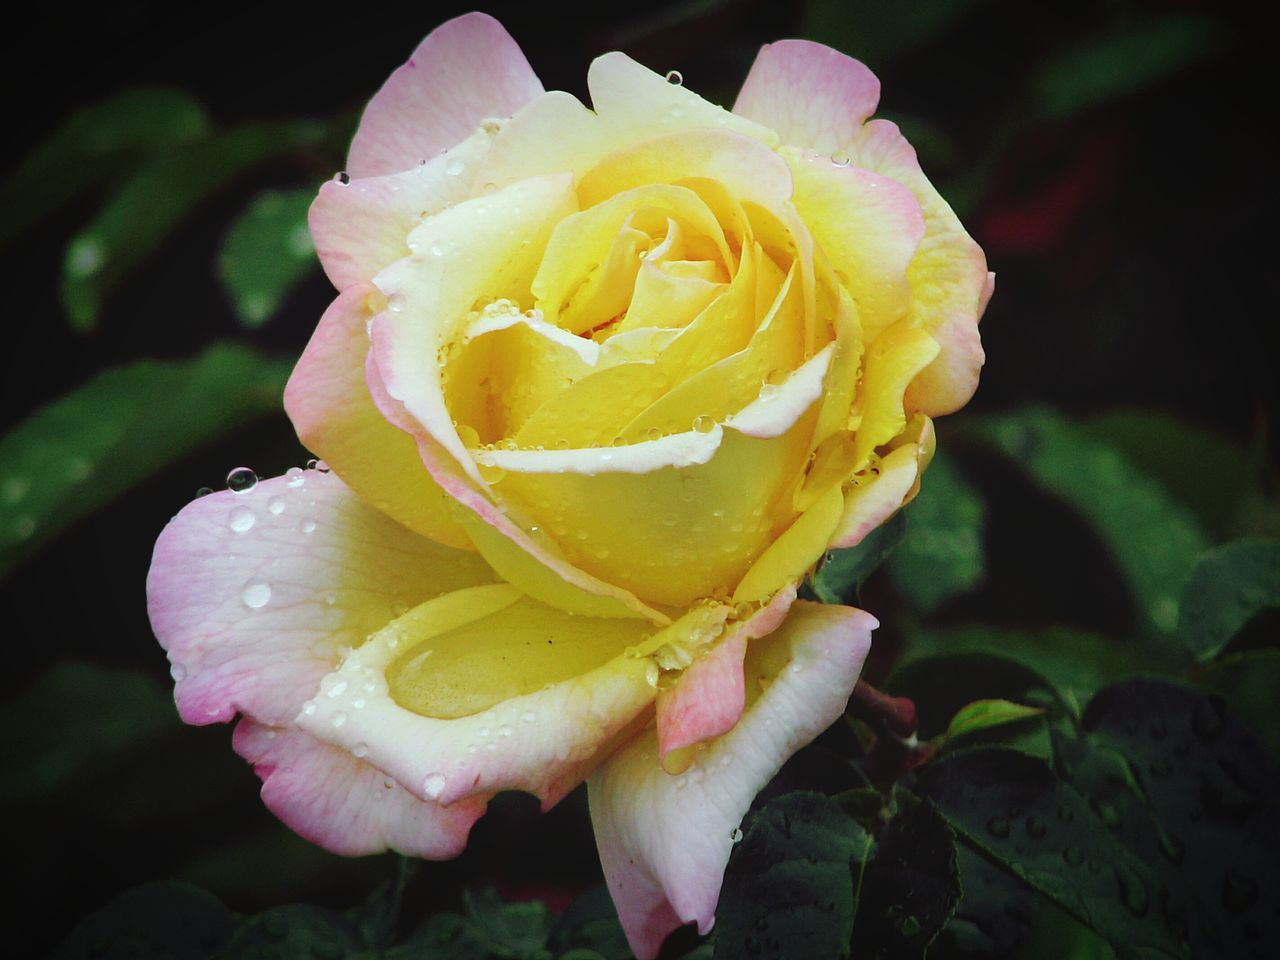 flower, petal, beauty in nature, nature, flower head, freshness, rose - flower, fragility, growth, plant, drop, close-up, no people, yellow, love, wet, outdoors, blooming, water, day